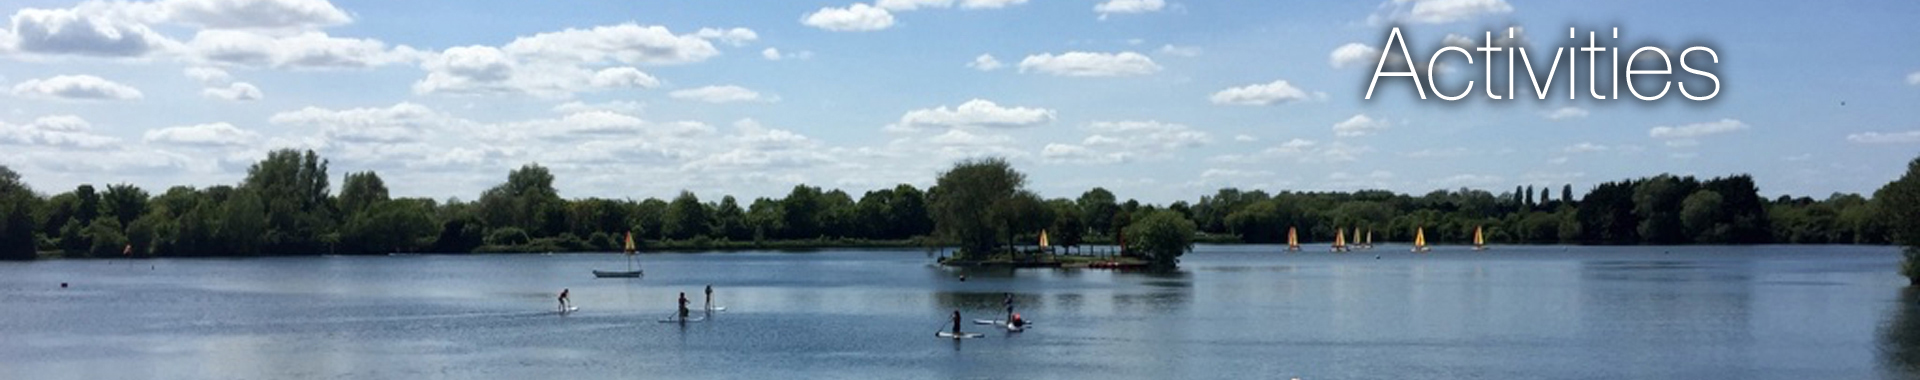 Water Sports at South Cerney Outdoor